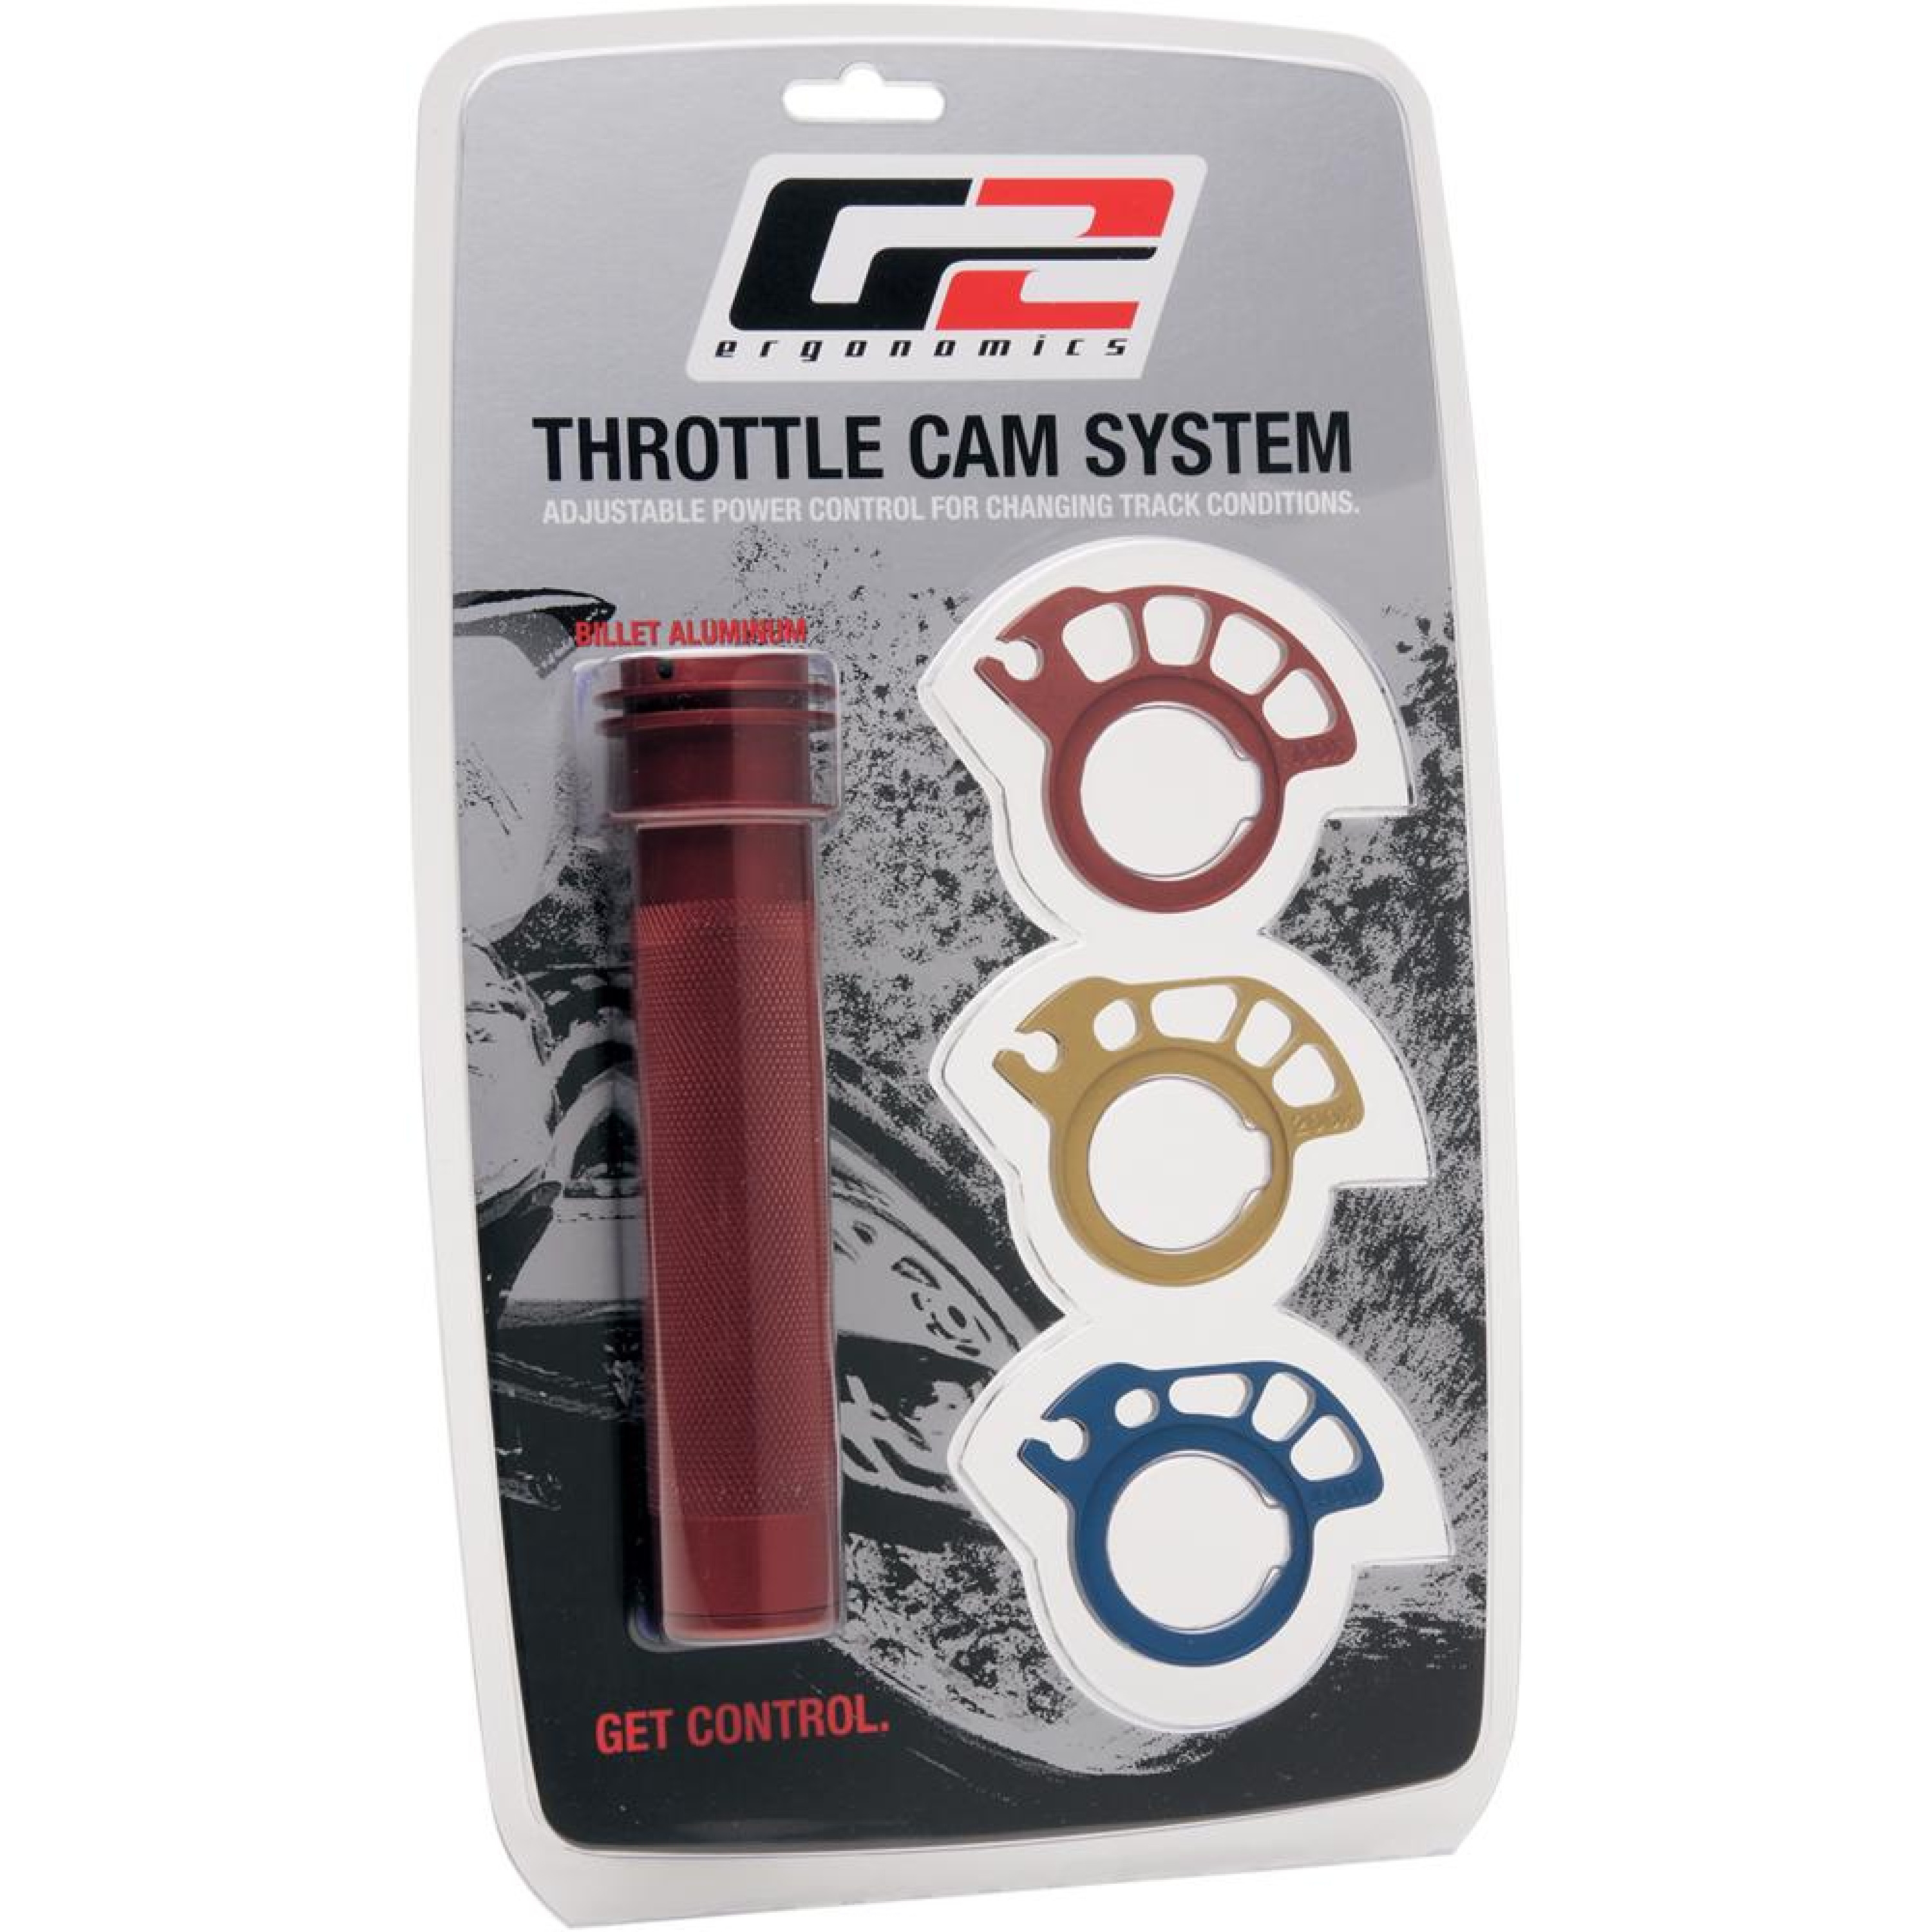 THROTTLE CAM SYS